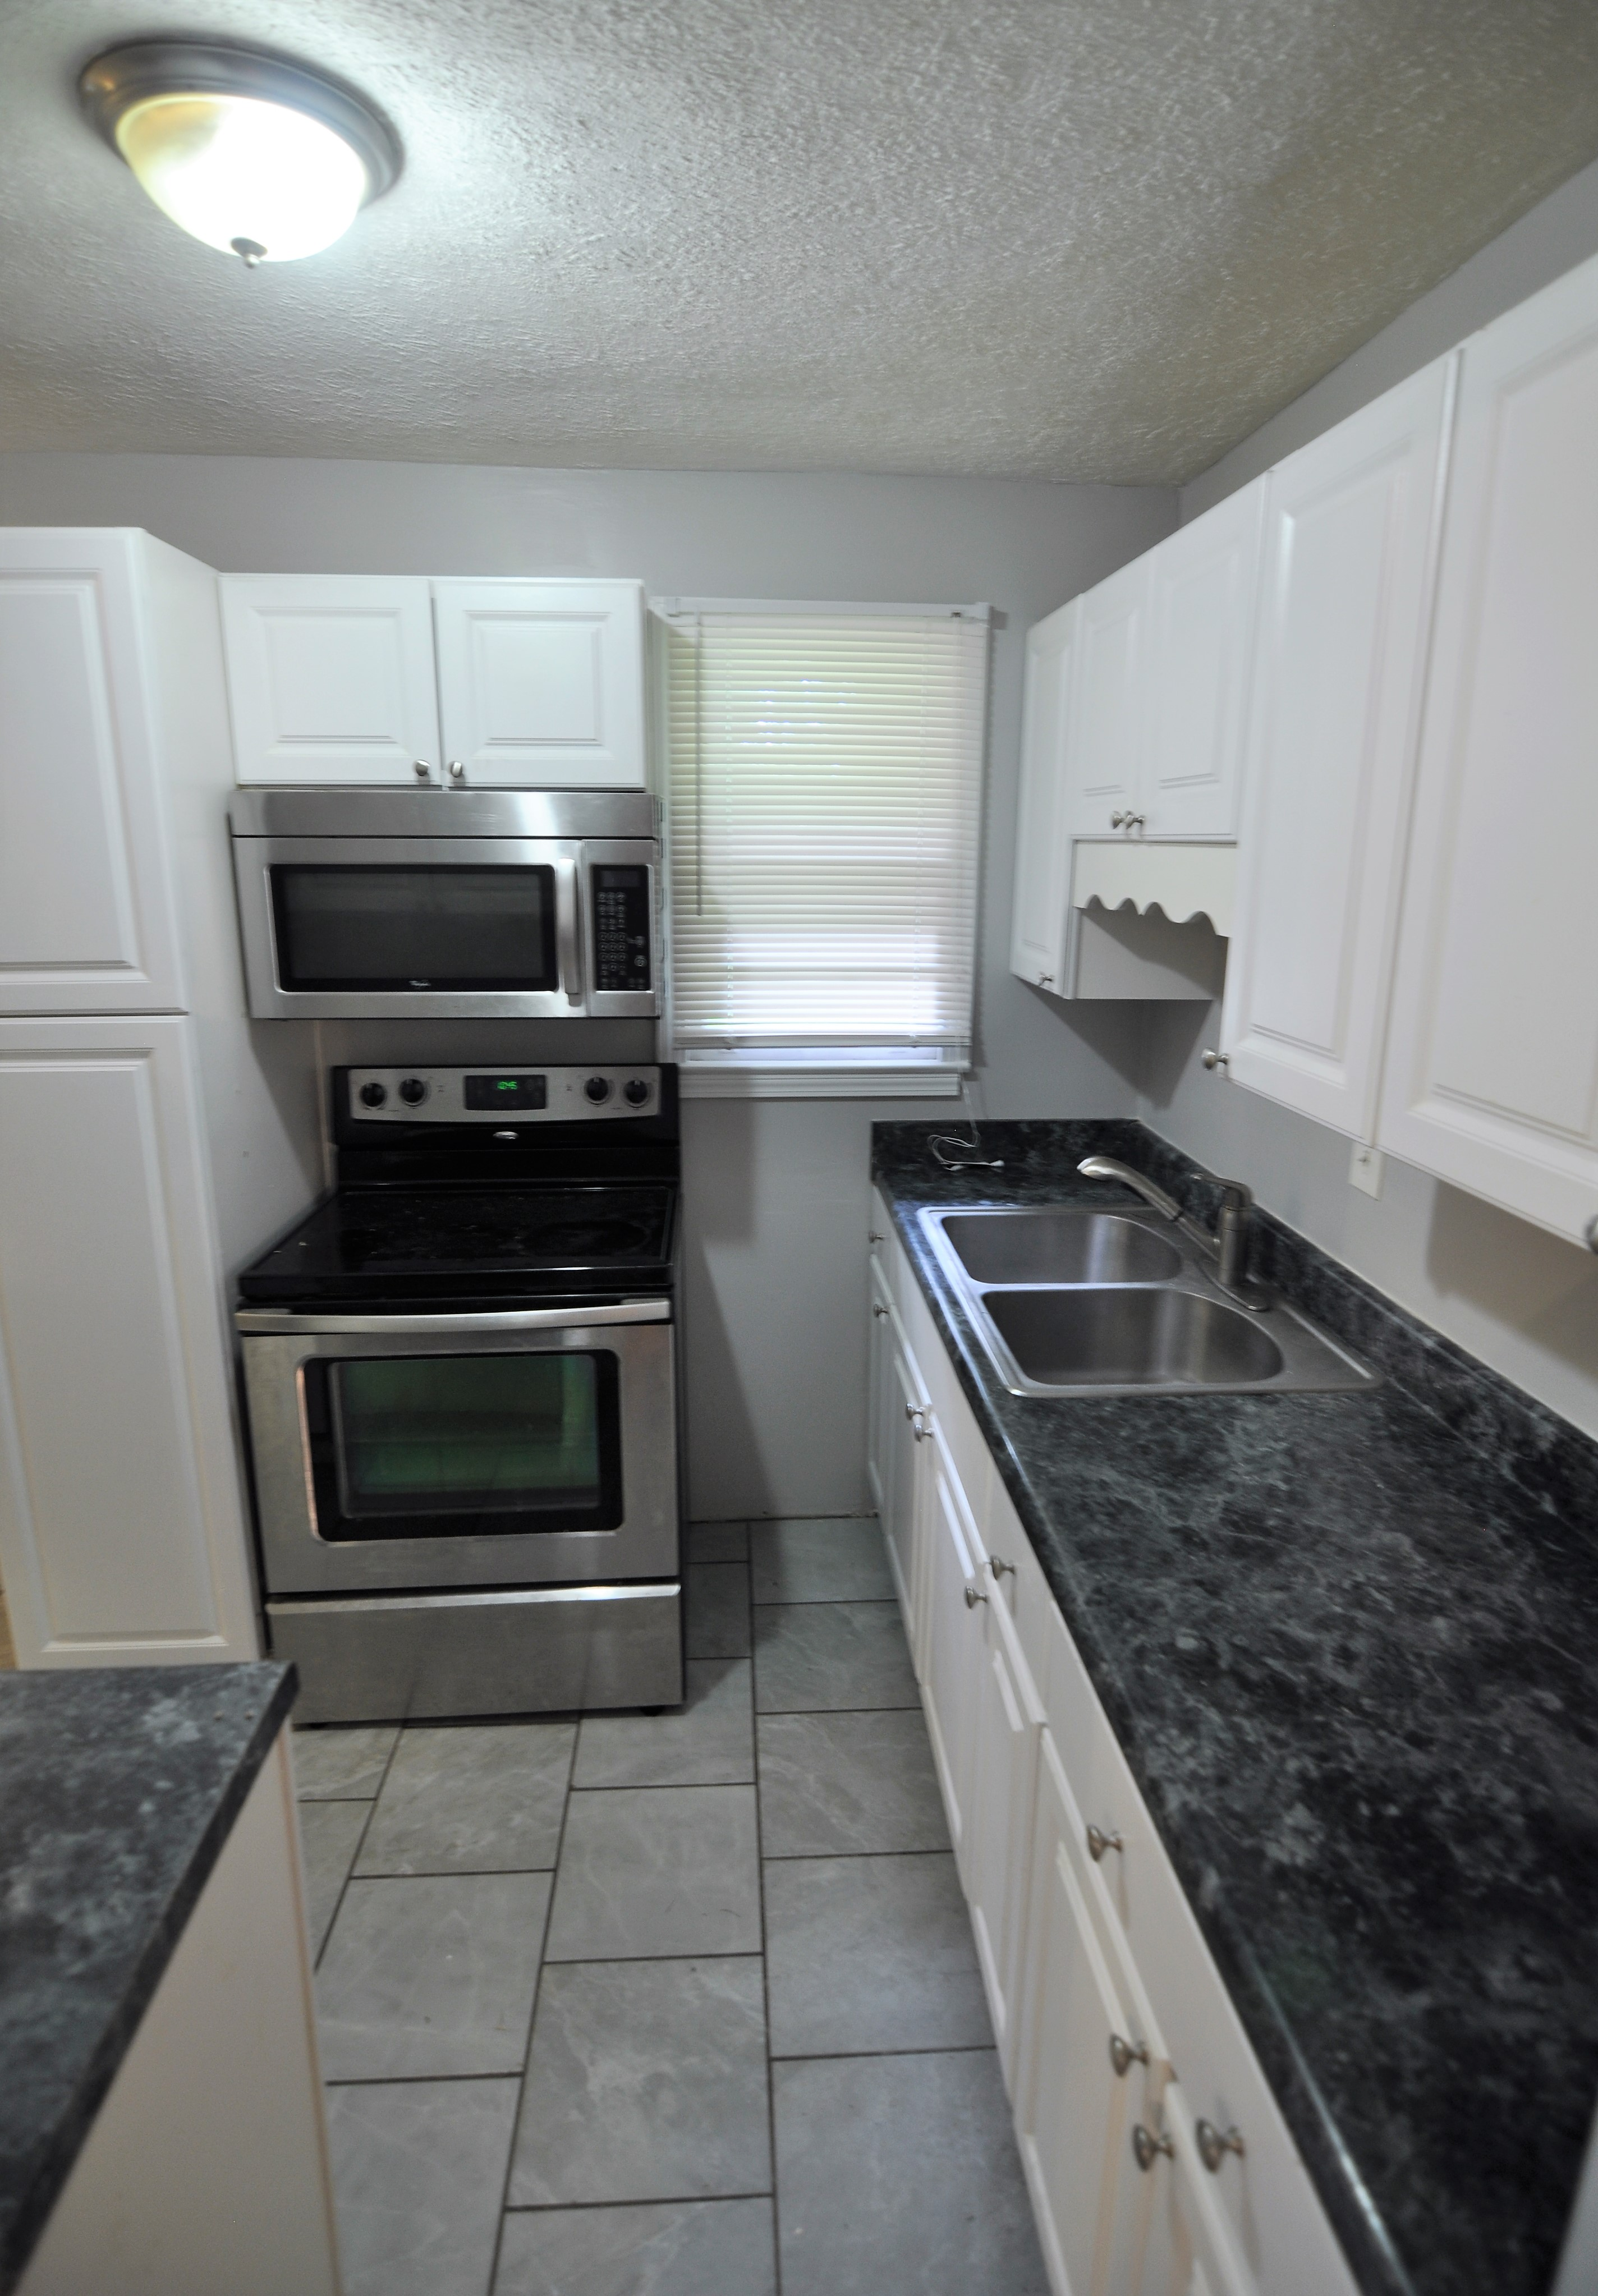 FOR RENT IN MONTGOMERY 3 BED 1 BATH AT 3534 FARWOOD DRIVE!